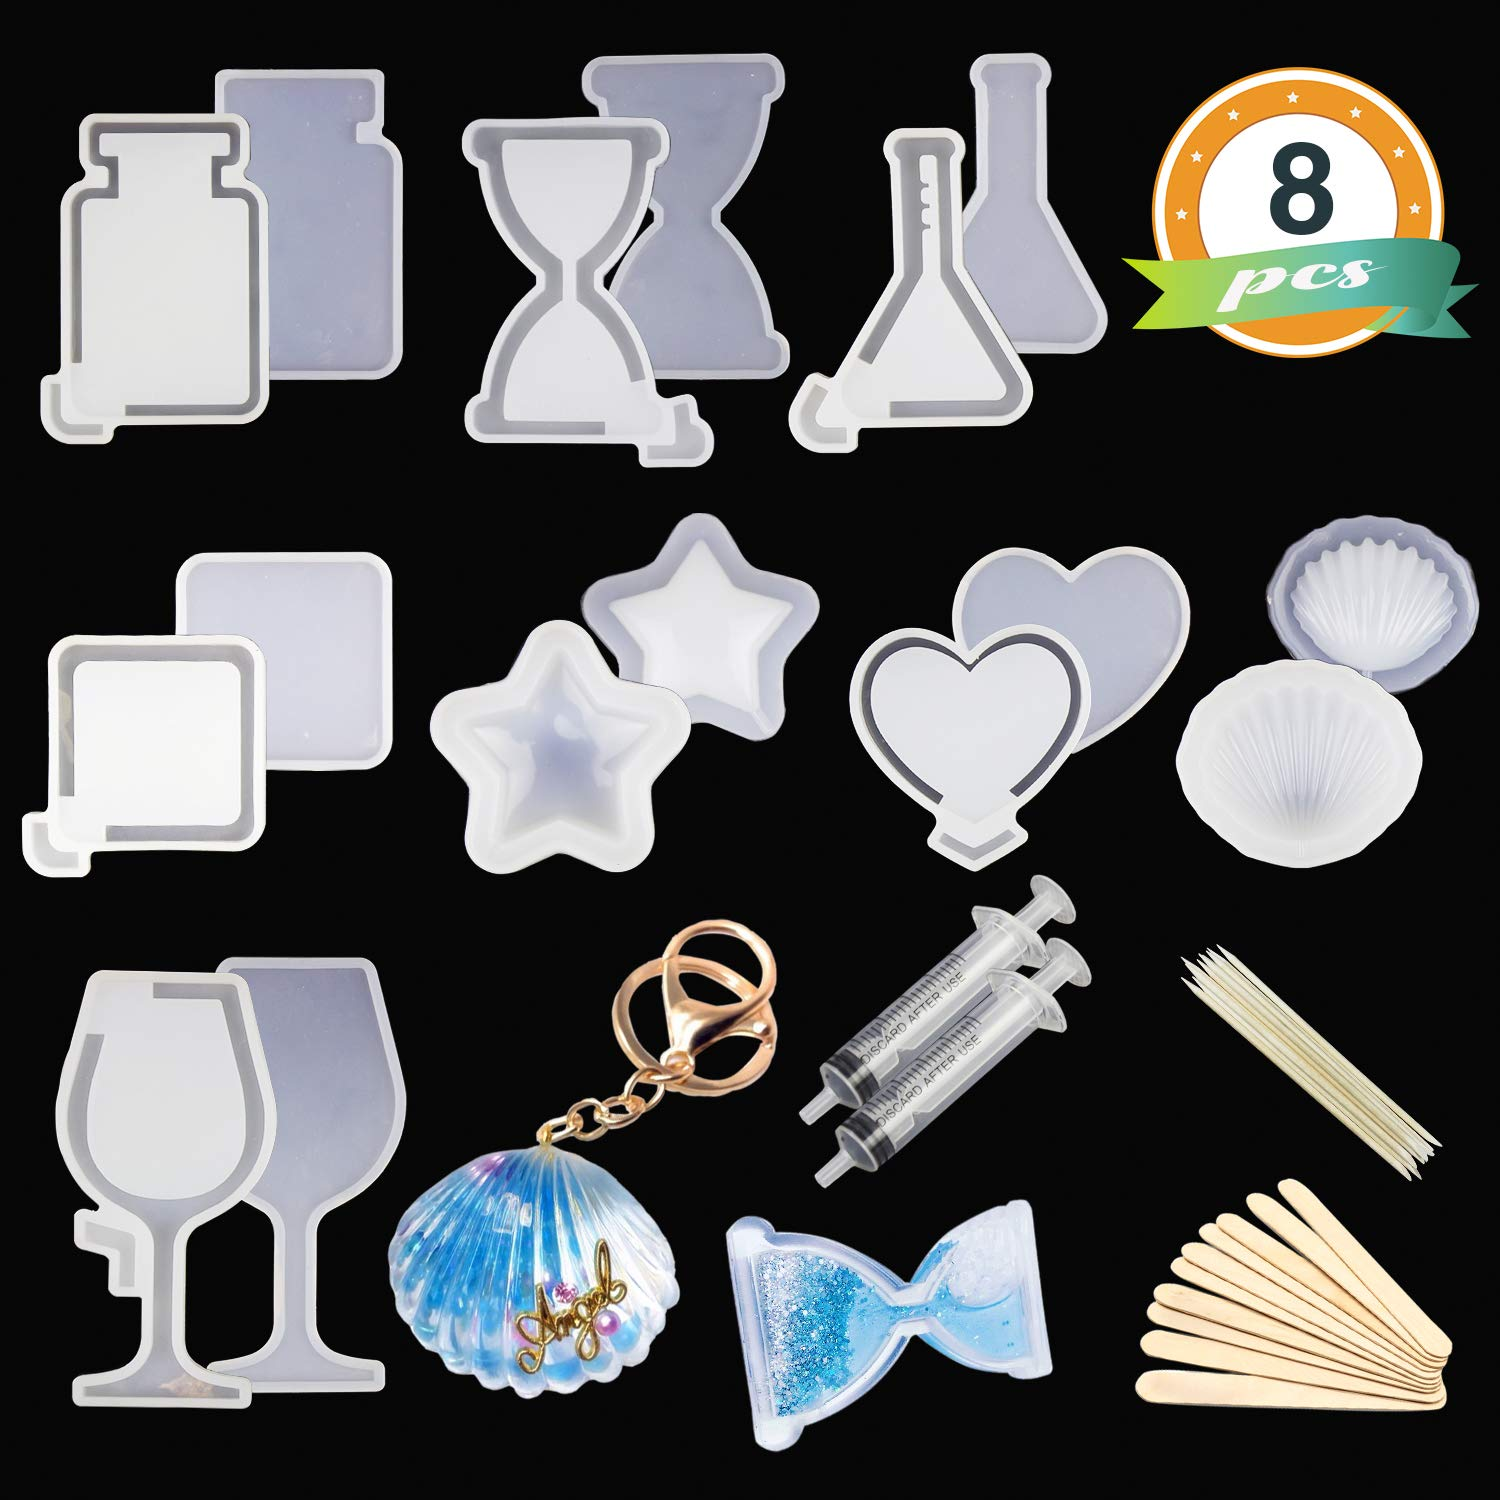 Home Decoration Jewelry Casting Molds for Jewelry Necklace//Candle//Soap Making Resin Jewelry Molds Silicone Molds for Resin LETS RESIN 9PCS Resin Molds Crystal Stone Shape